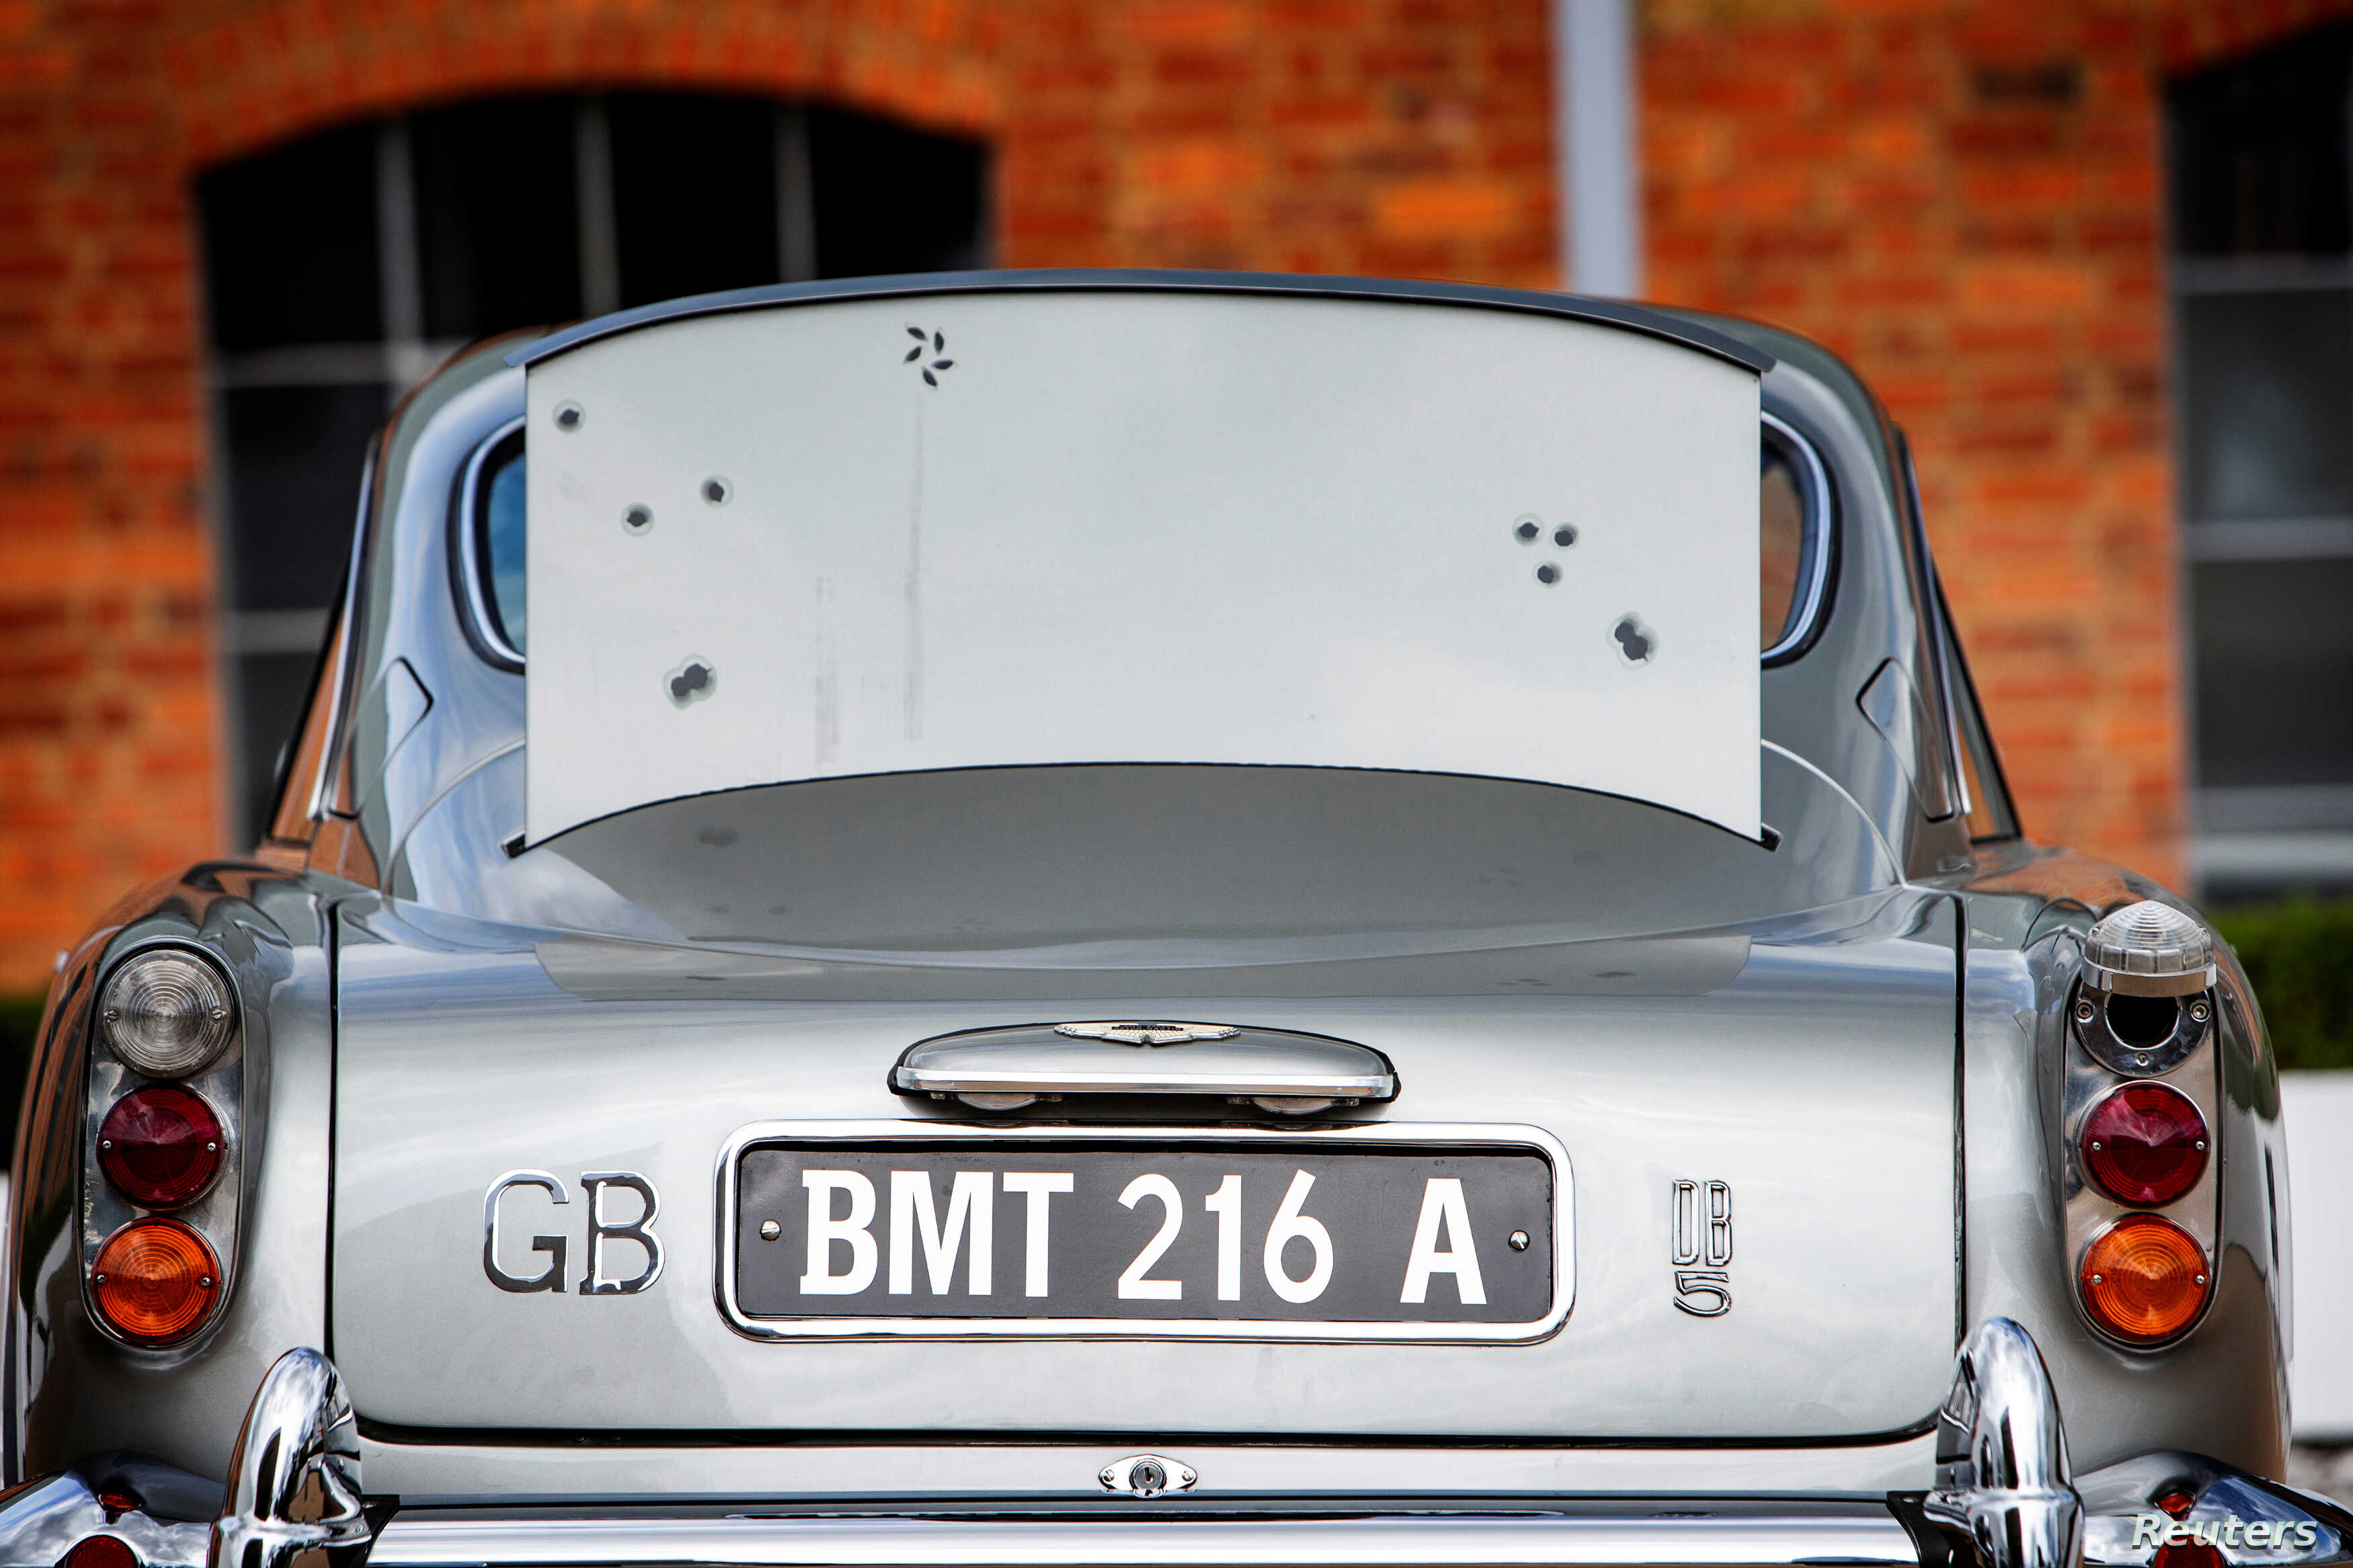 Aston Martin Built For James Bond Heading To Auction Voice Of America English